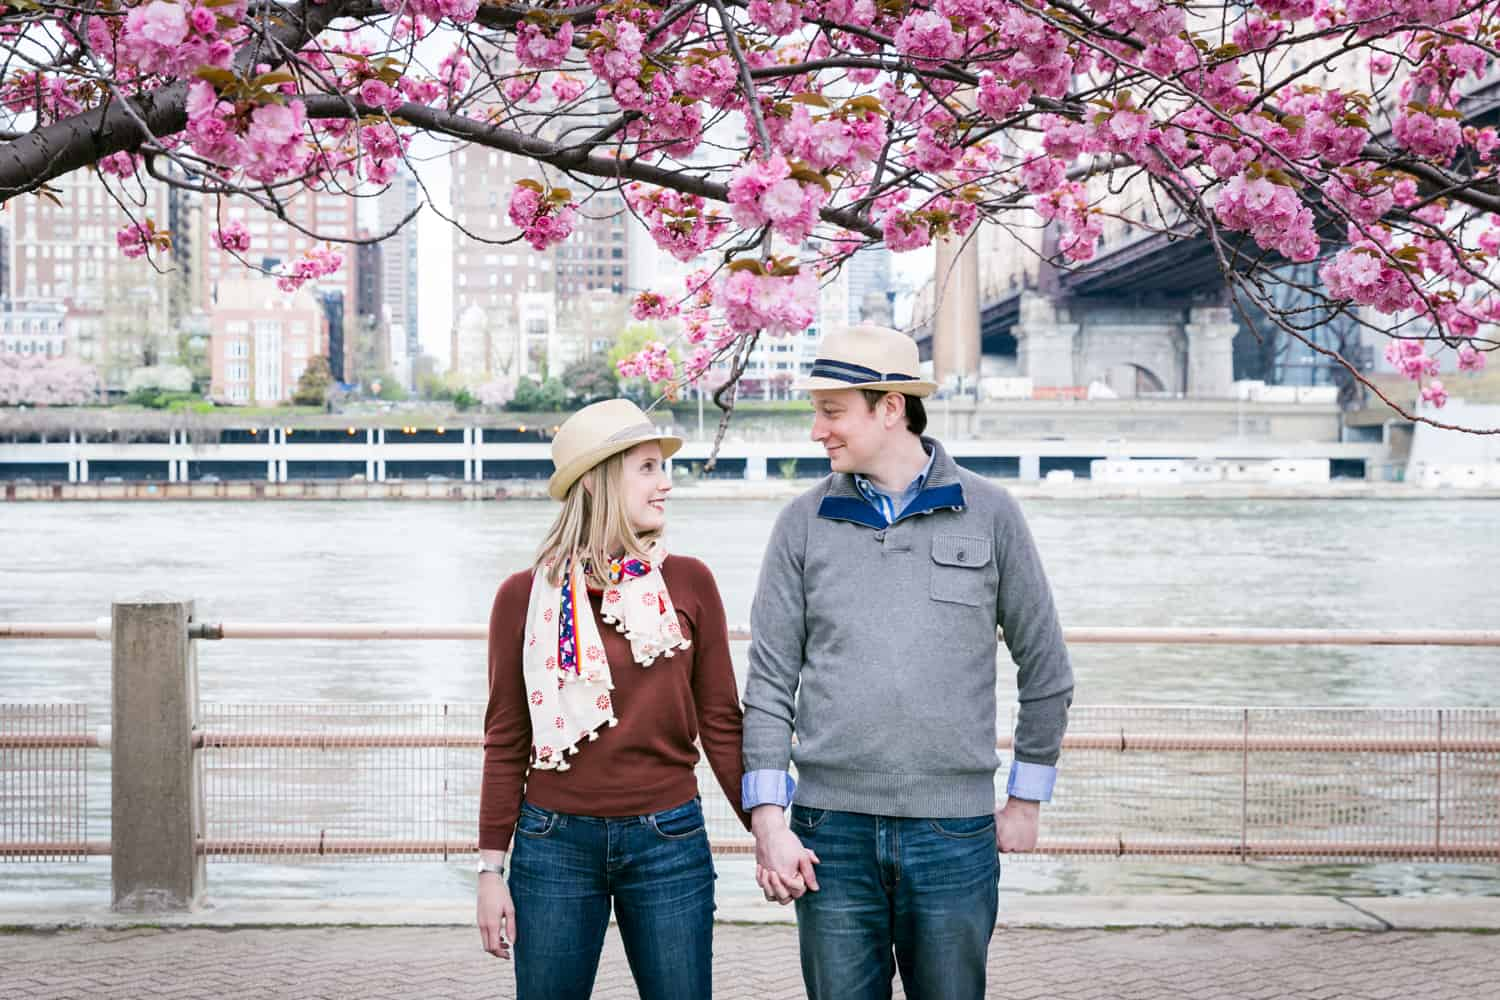 Couple holding hands under cherry blossom trees on Roosevelt Island for an article ranking the best places to see cherry blossoms in NYC